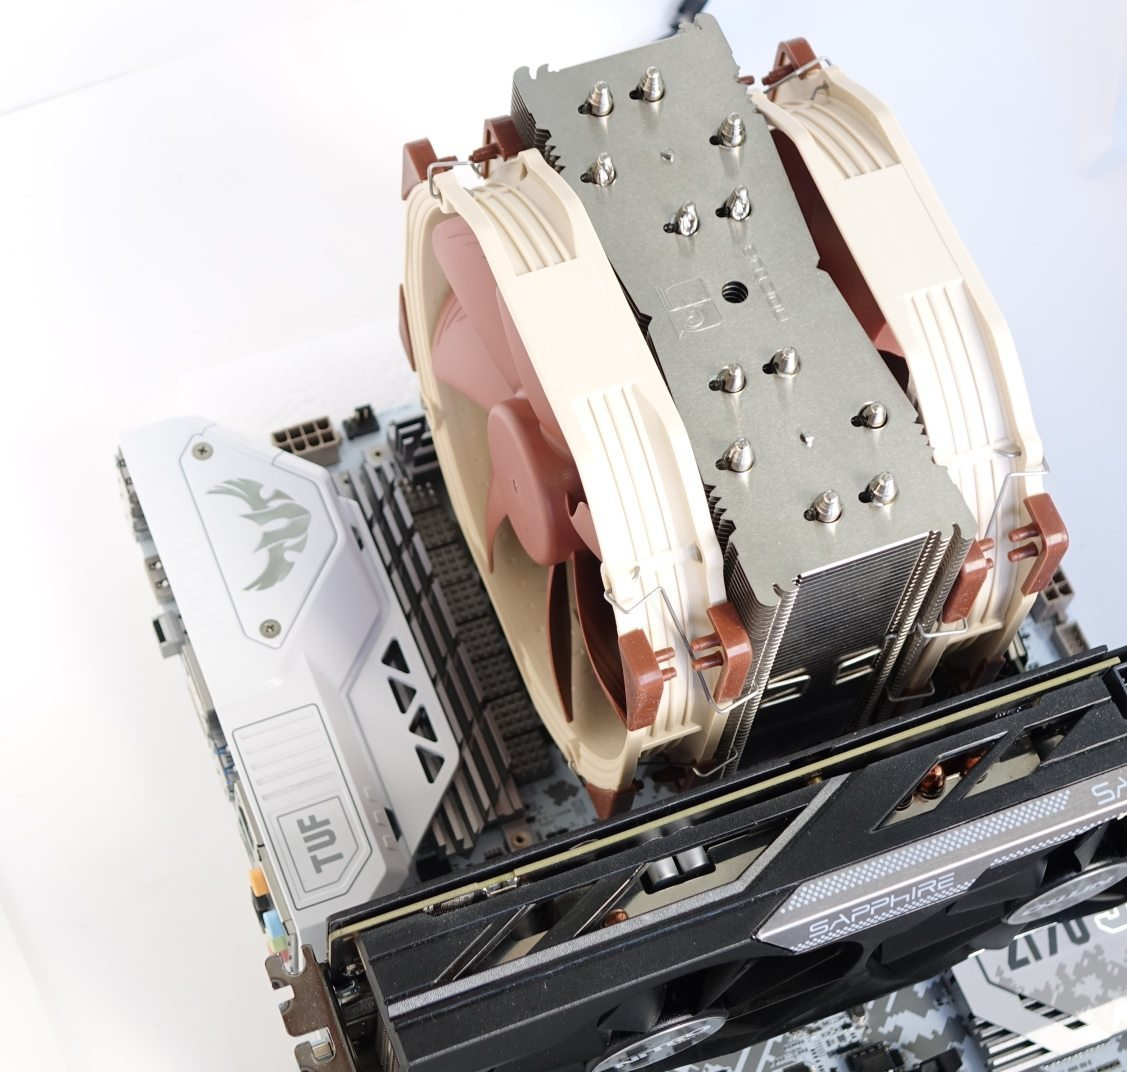 Noctua NH-U14S dual fan on board